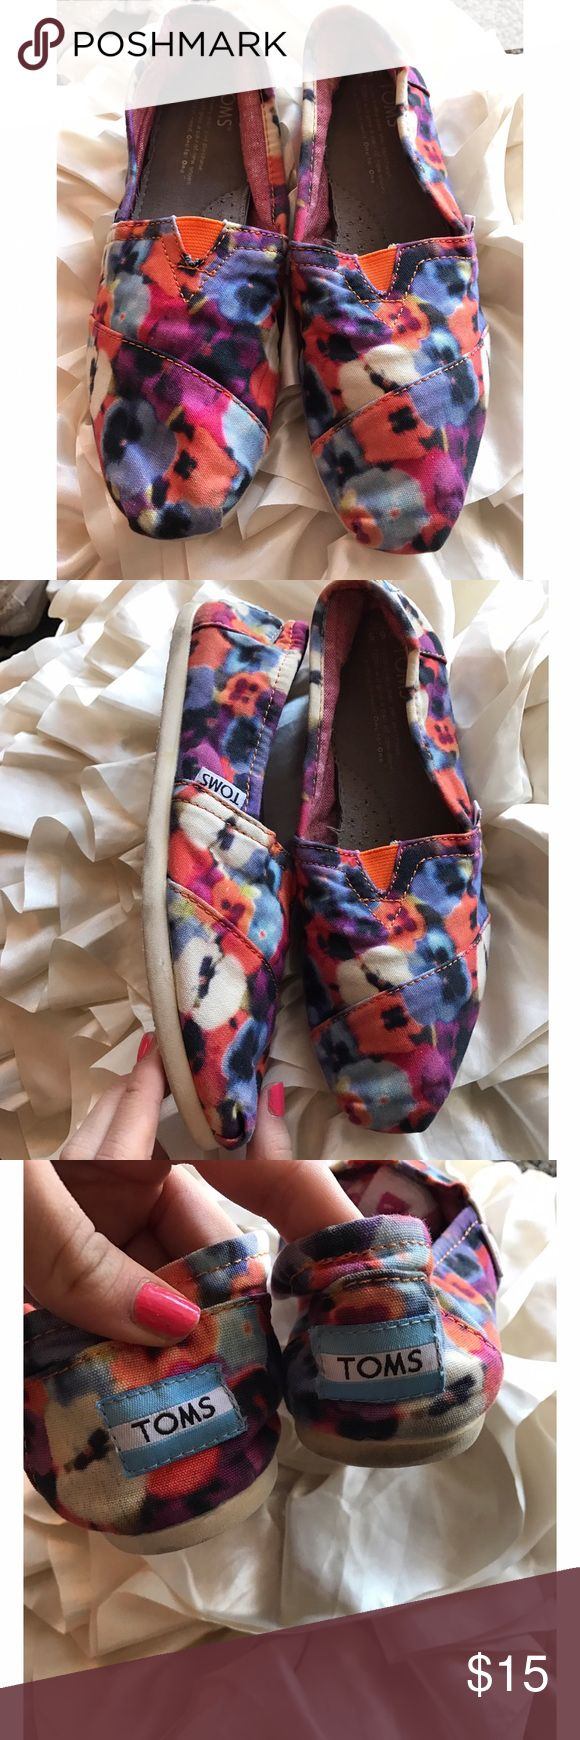 Beautiful floral TOMS So pretty and bright. Bottoms may be darkened but from the top look good as new. Beautiful TOMS TOMS Shoes Flats & Loafers